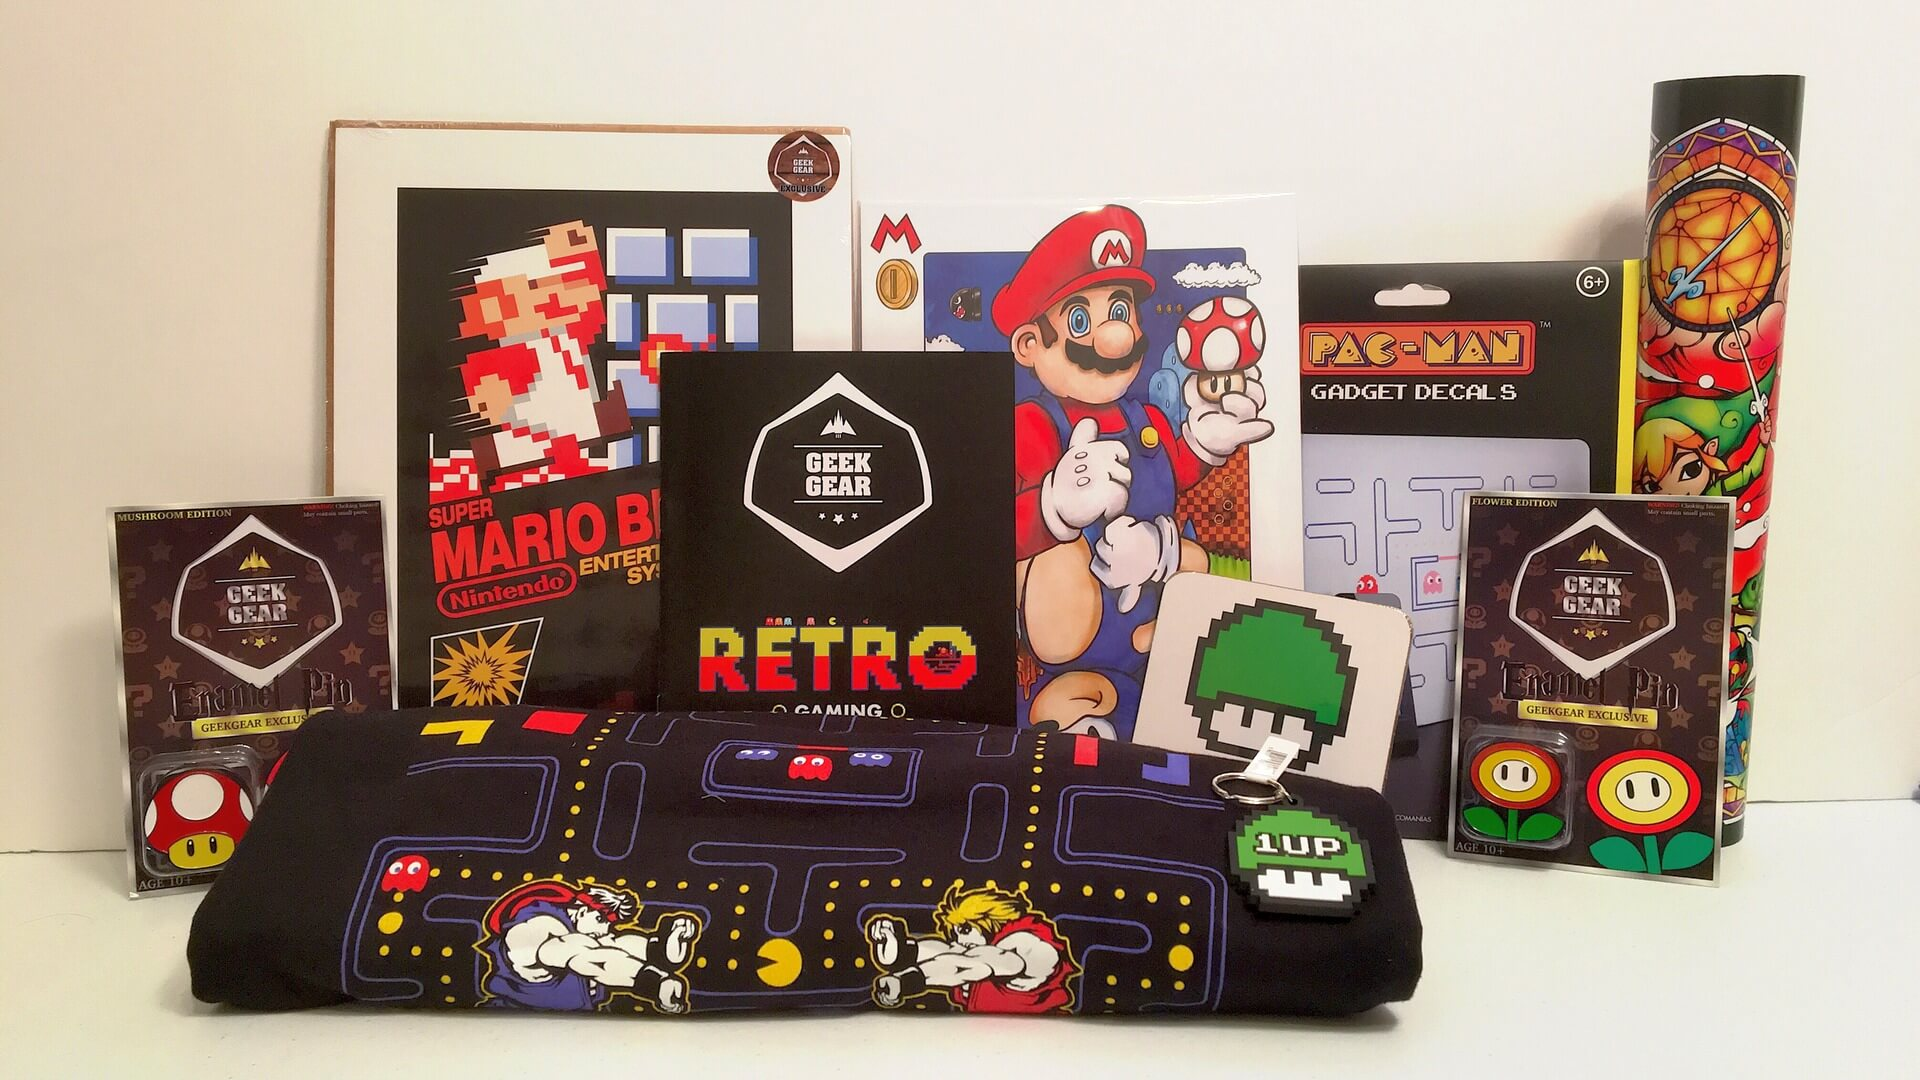 Geek Gear: Retro Gaming with Mario, Sonic, Zelda and more! - Review